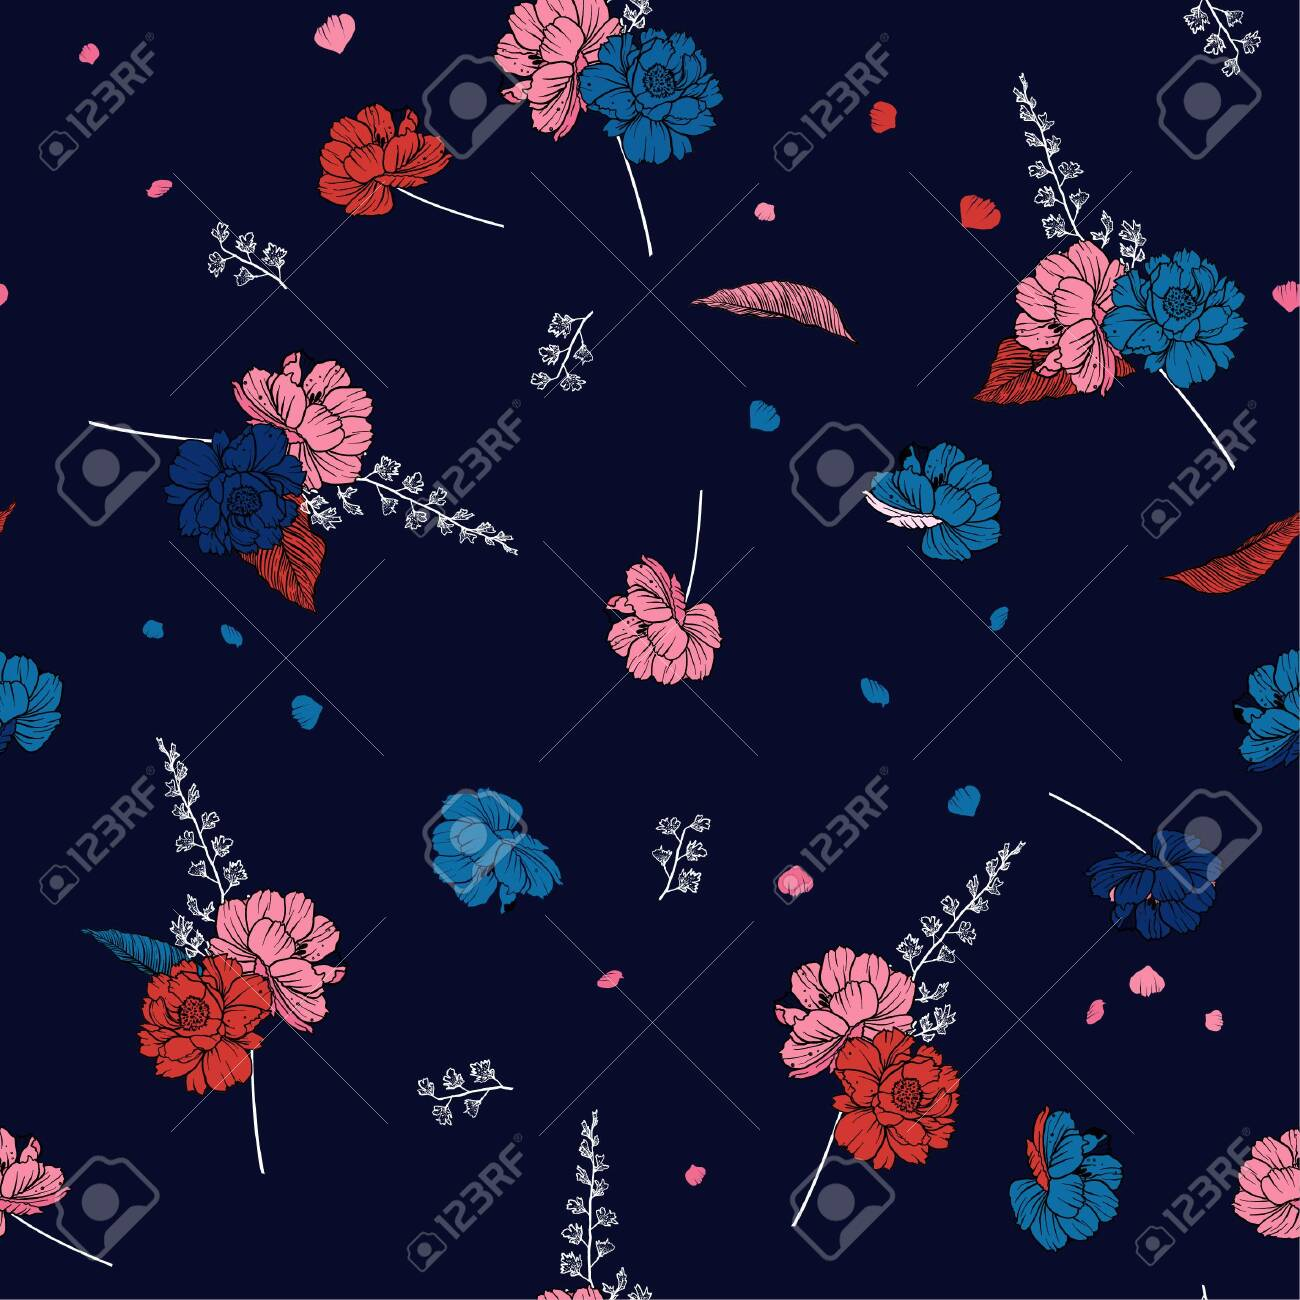 Beautiful Seamless Floral Pattern In Vector Illustration Design